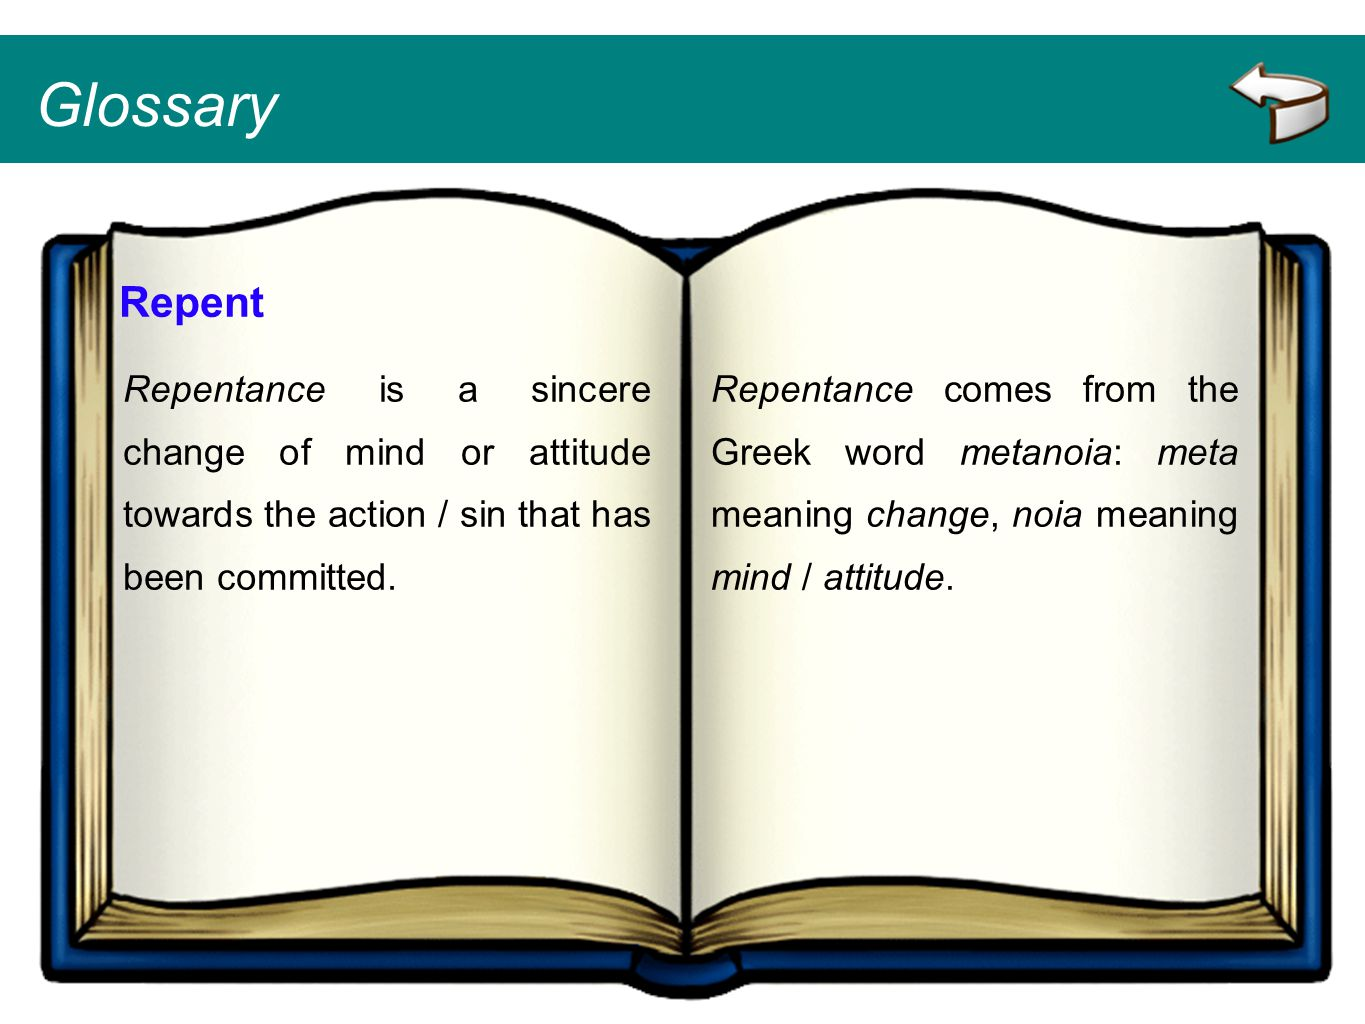 Glossary Repent. Repentance is a sincere change of mind or attitude towards the action / sin that has been committed.